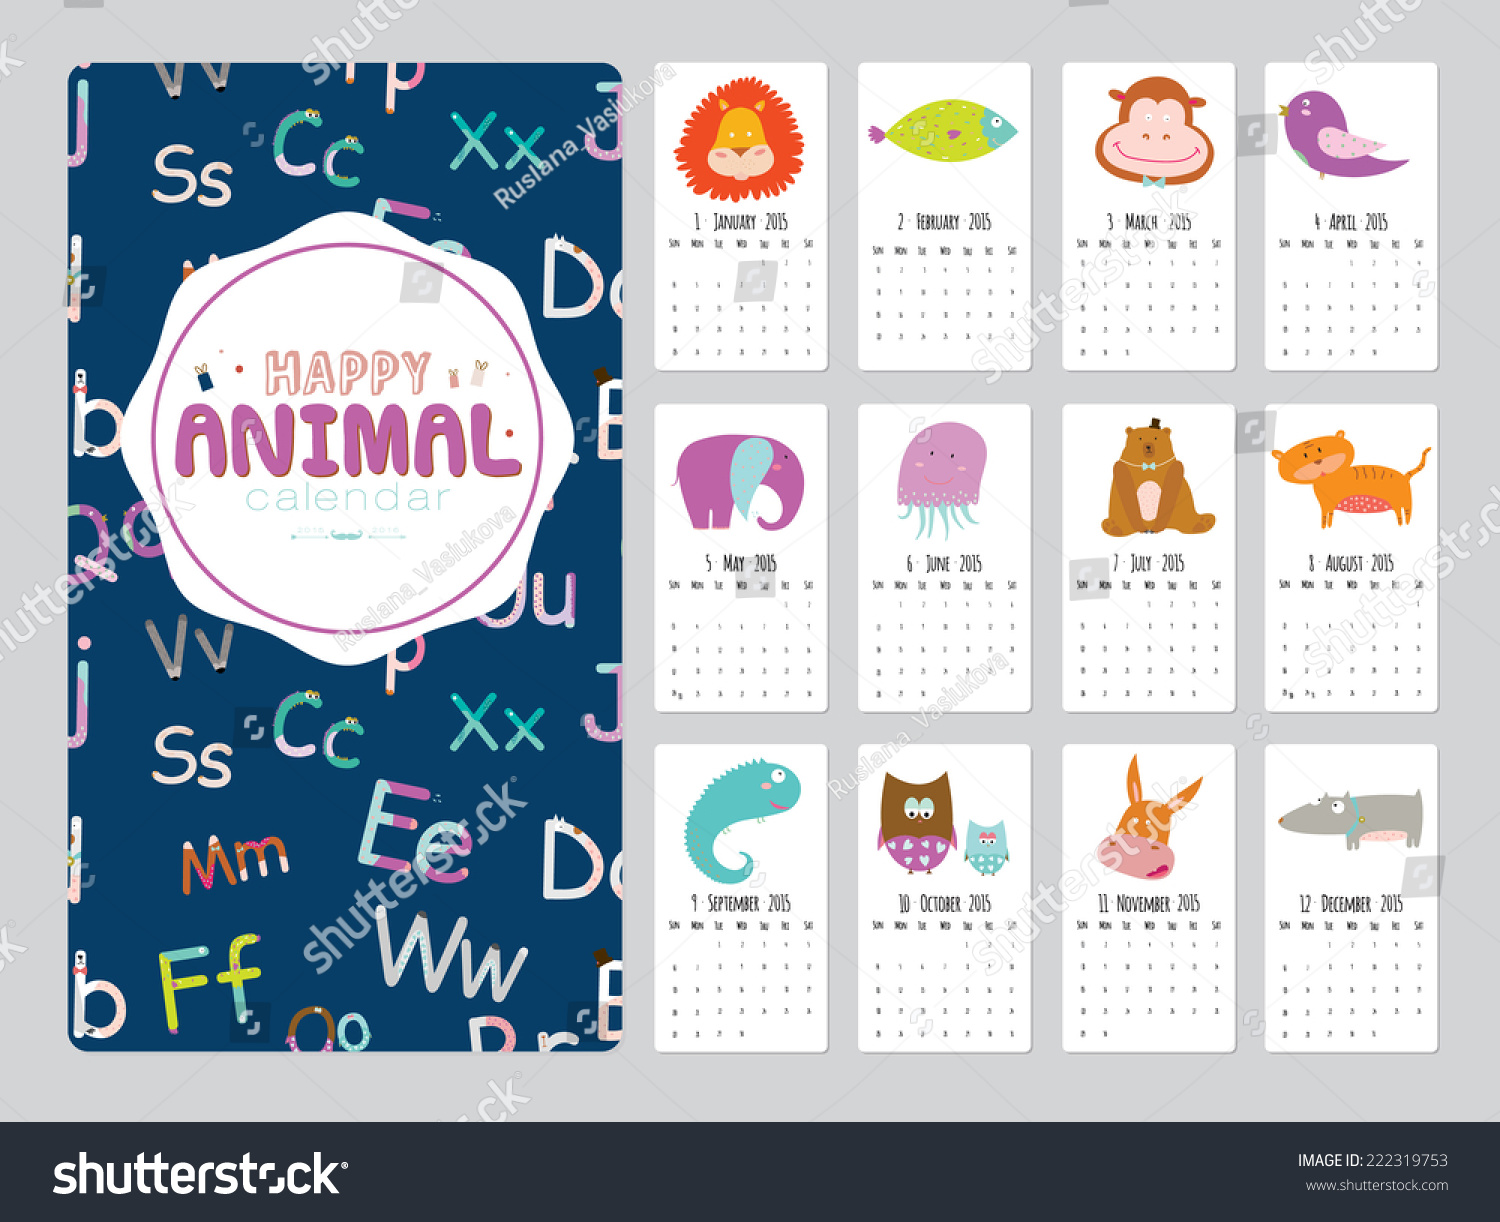 Cute Calendar Illustration : Unusual calendar cartoon funny animals stock vector